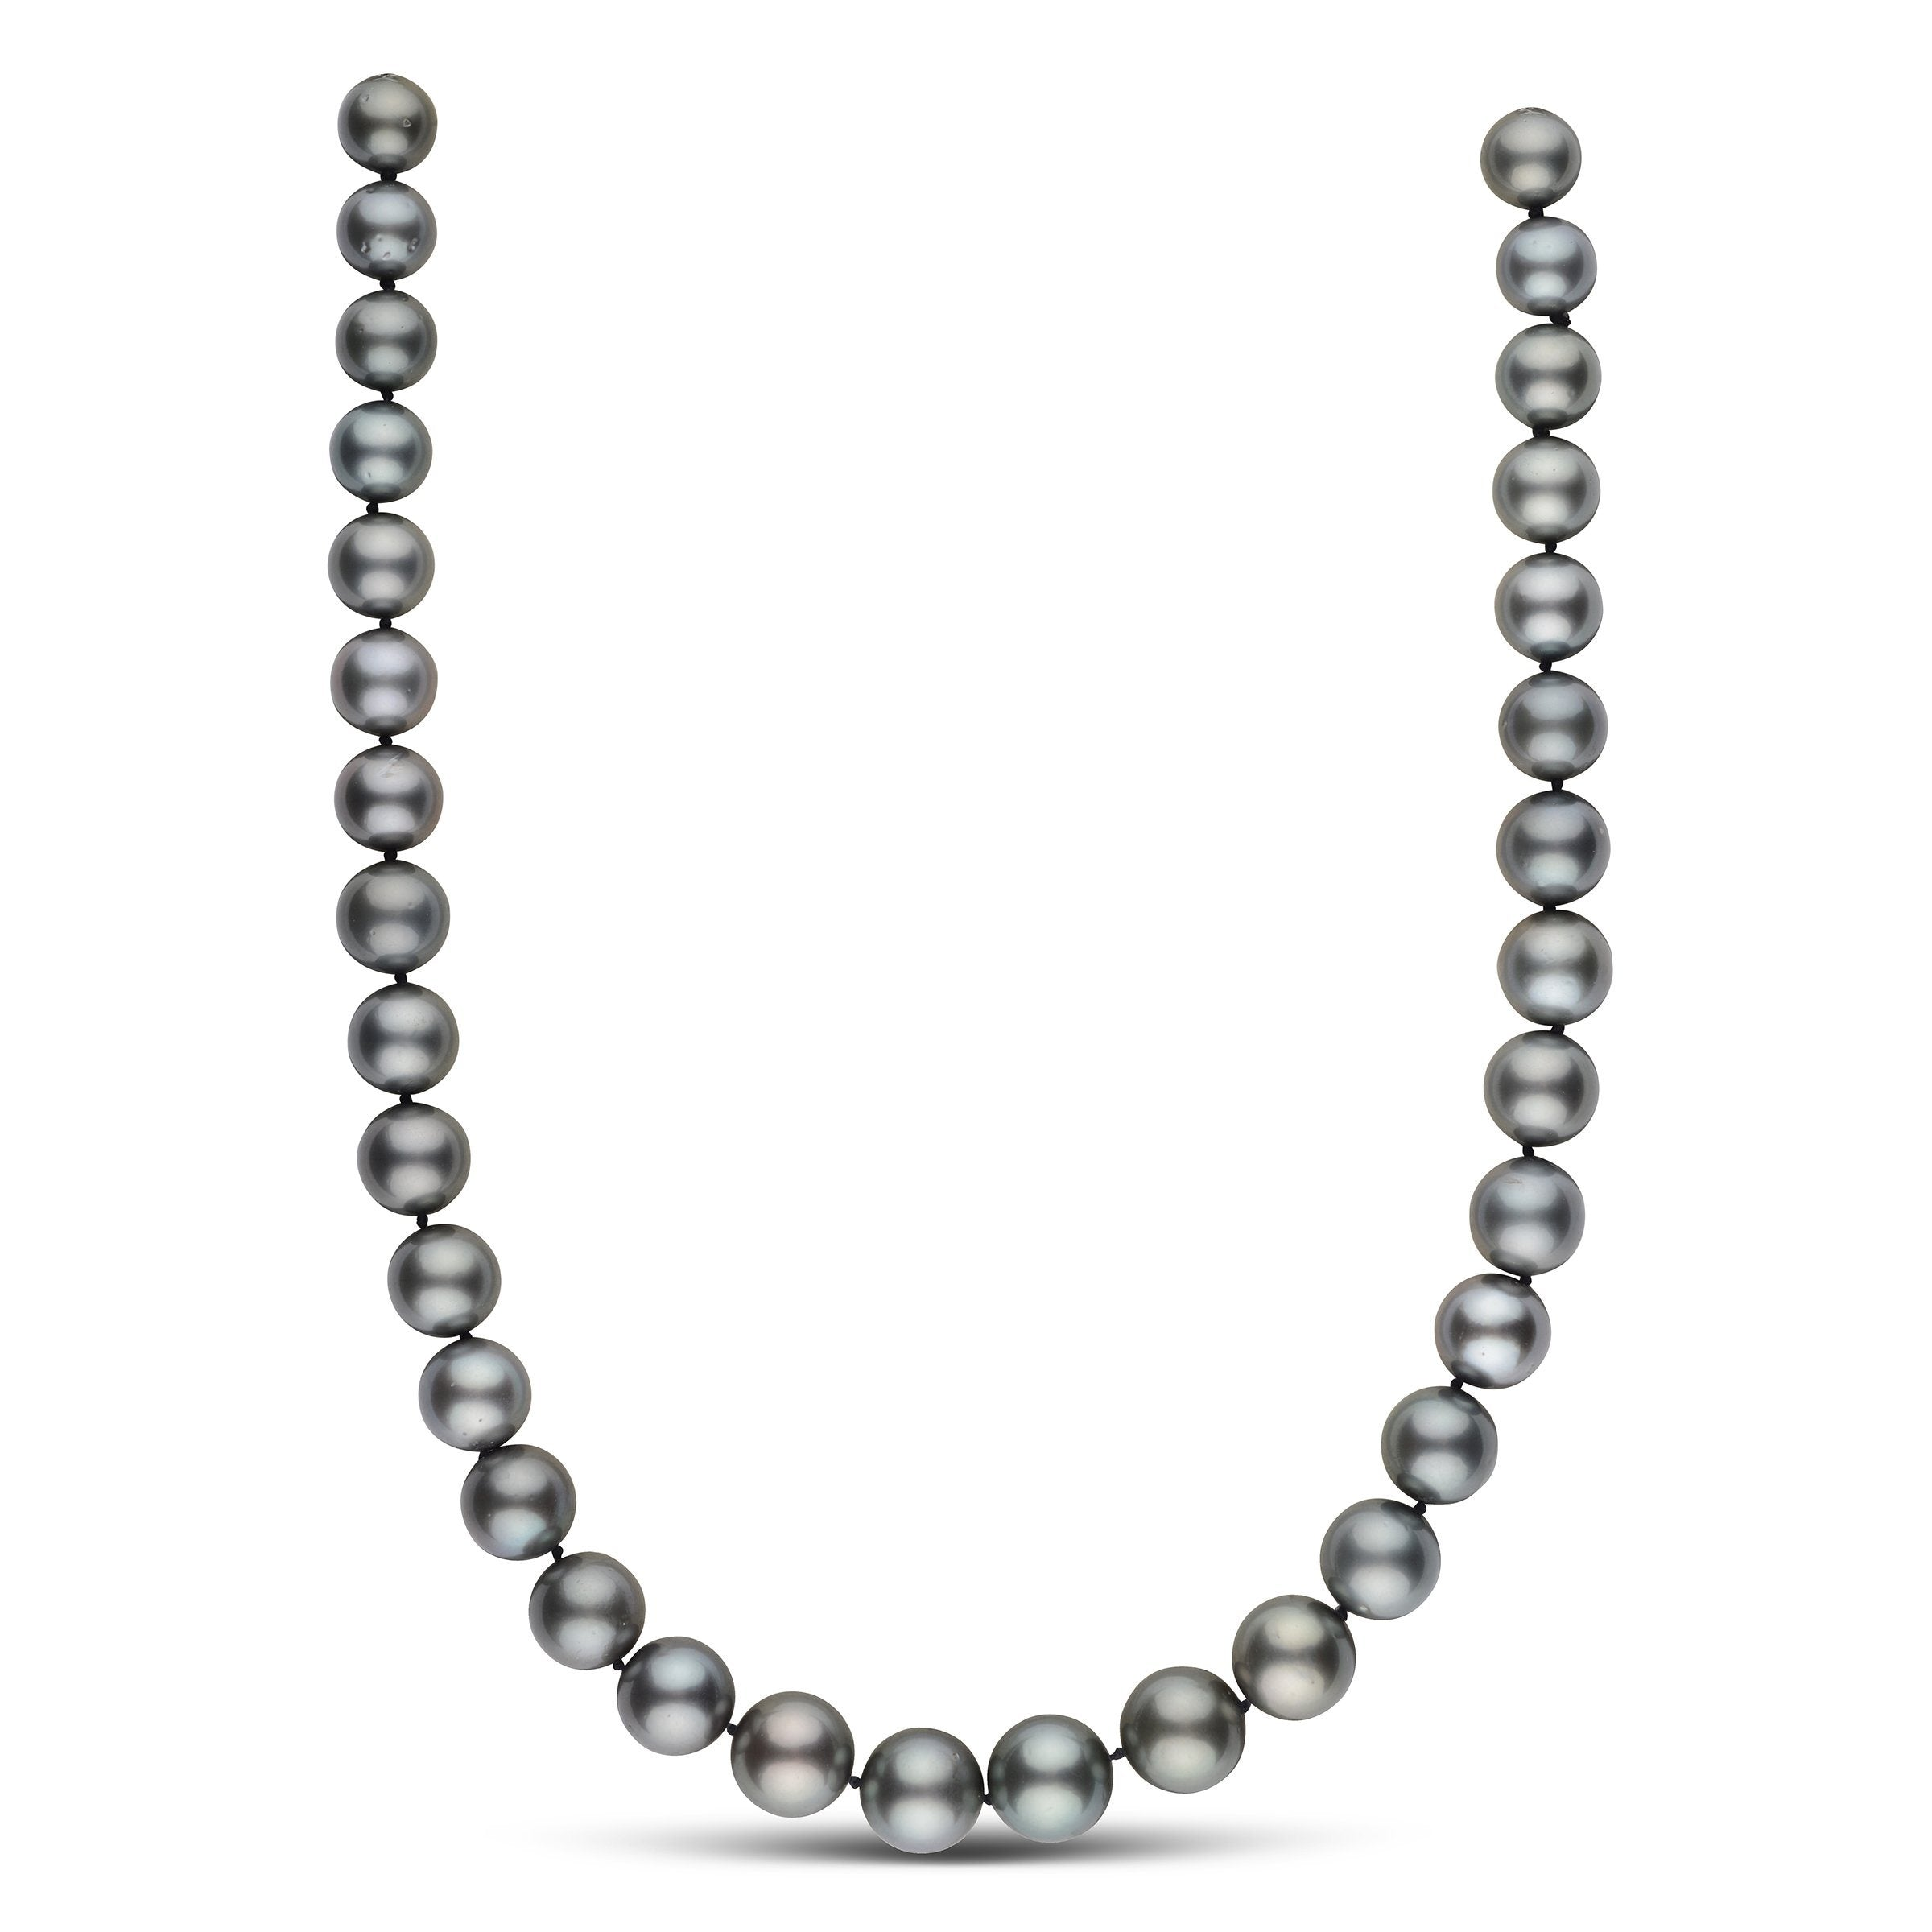 18 inch 10.4-12.7 mm AA+ Round Tahitian Pearl Necklace with Orbit Clasp